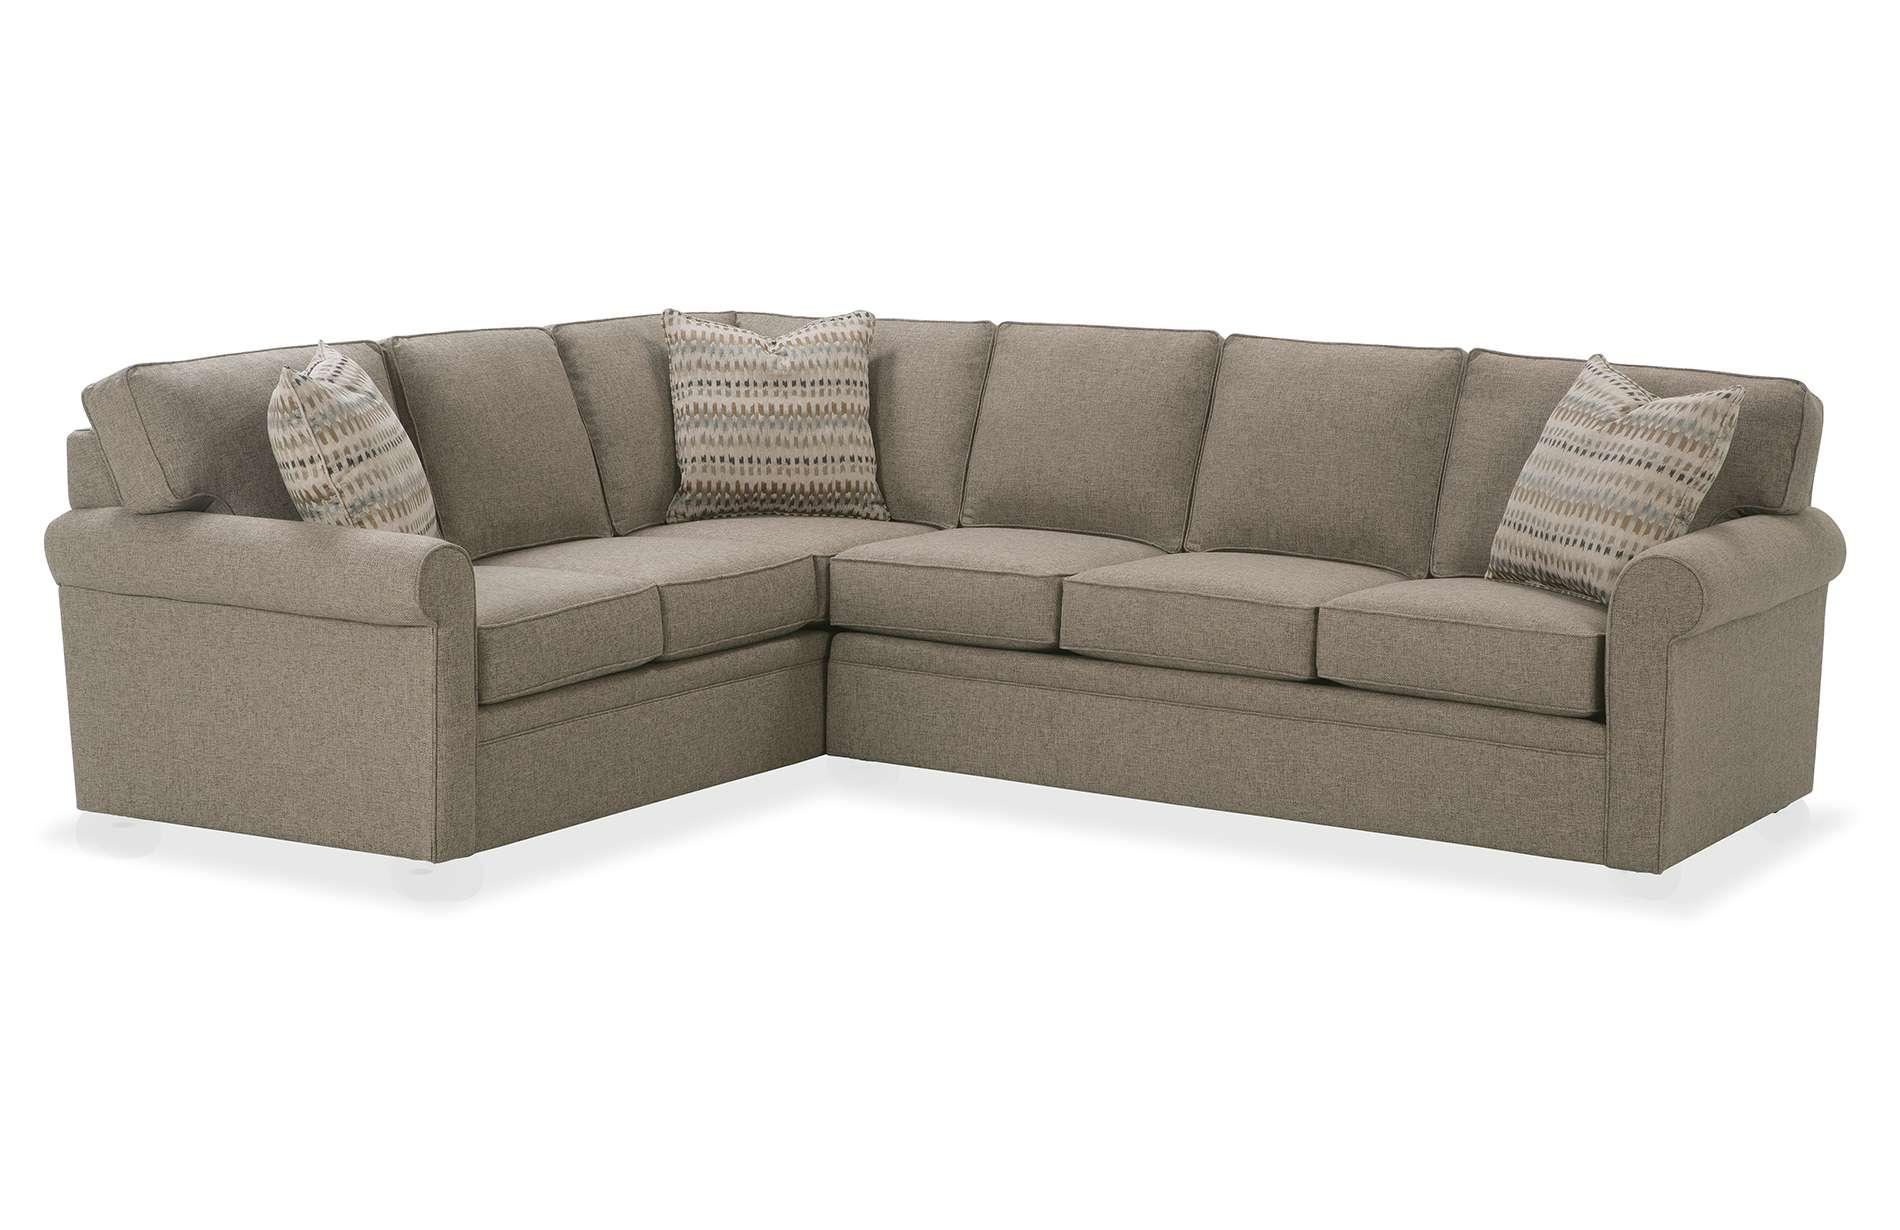 Fresh Small Scale Sectional Sofa With Chaise 73 On Faux Leather With Small Scale Sectional Sofas (Image 5 of 20)